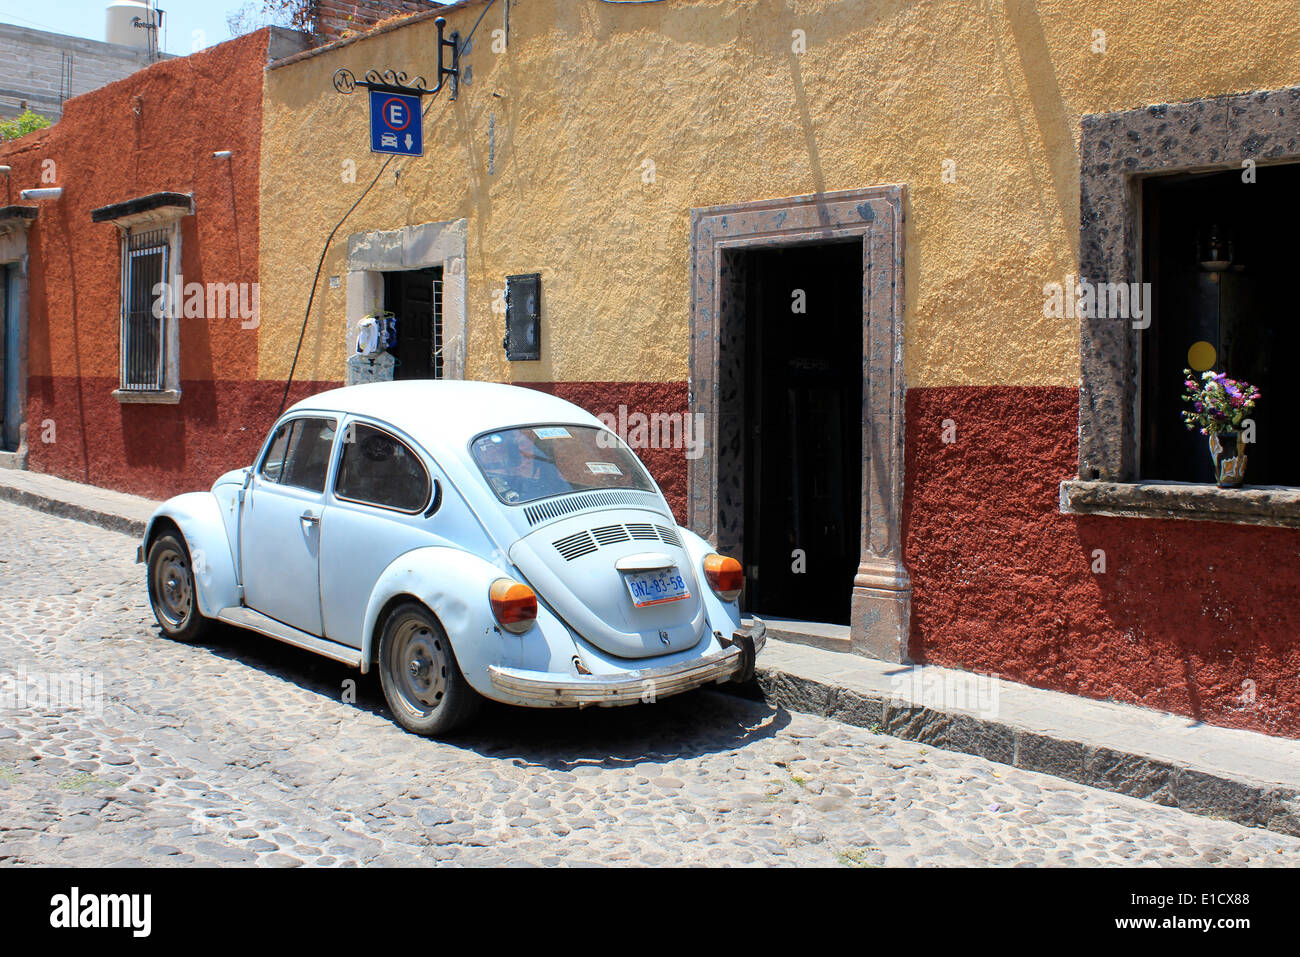 Light blue VW Beetle car outside typical colourful houses in San Miguel de Allende, Guanajuato, Mexico - Stock Image